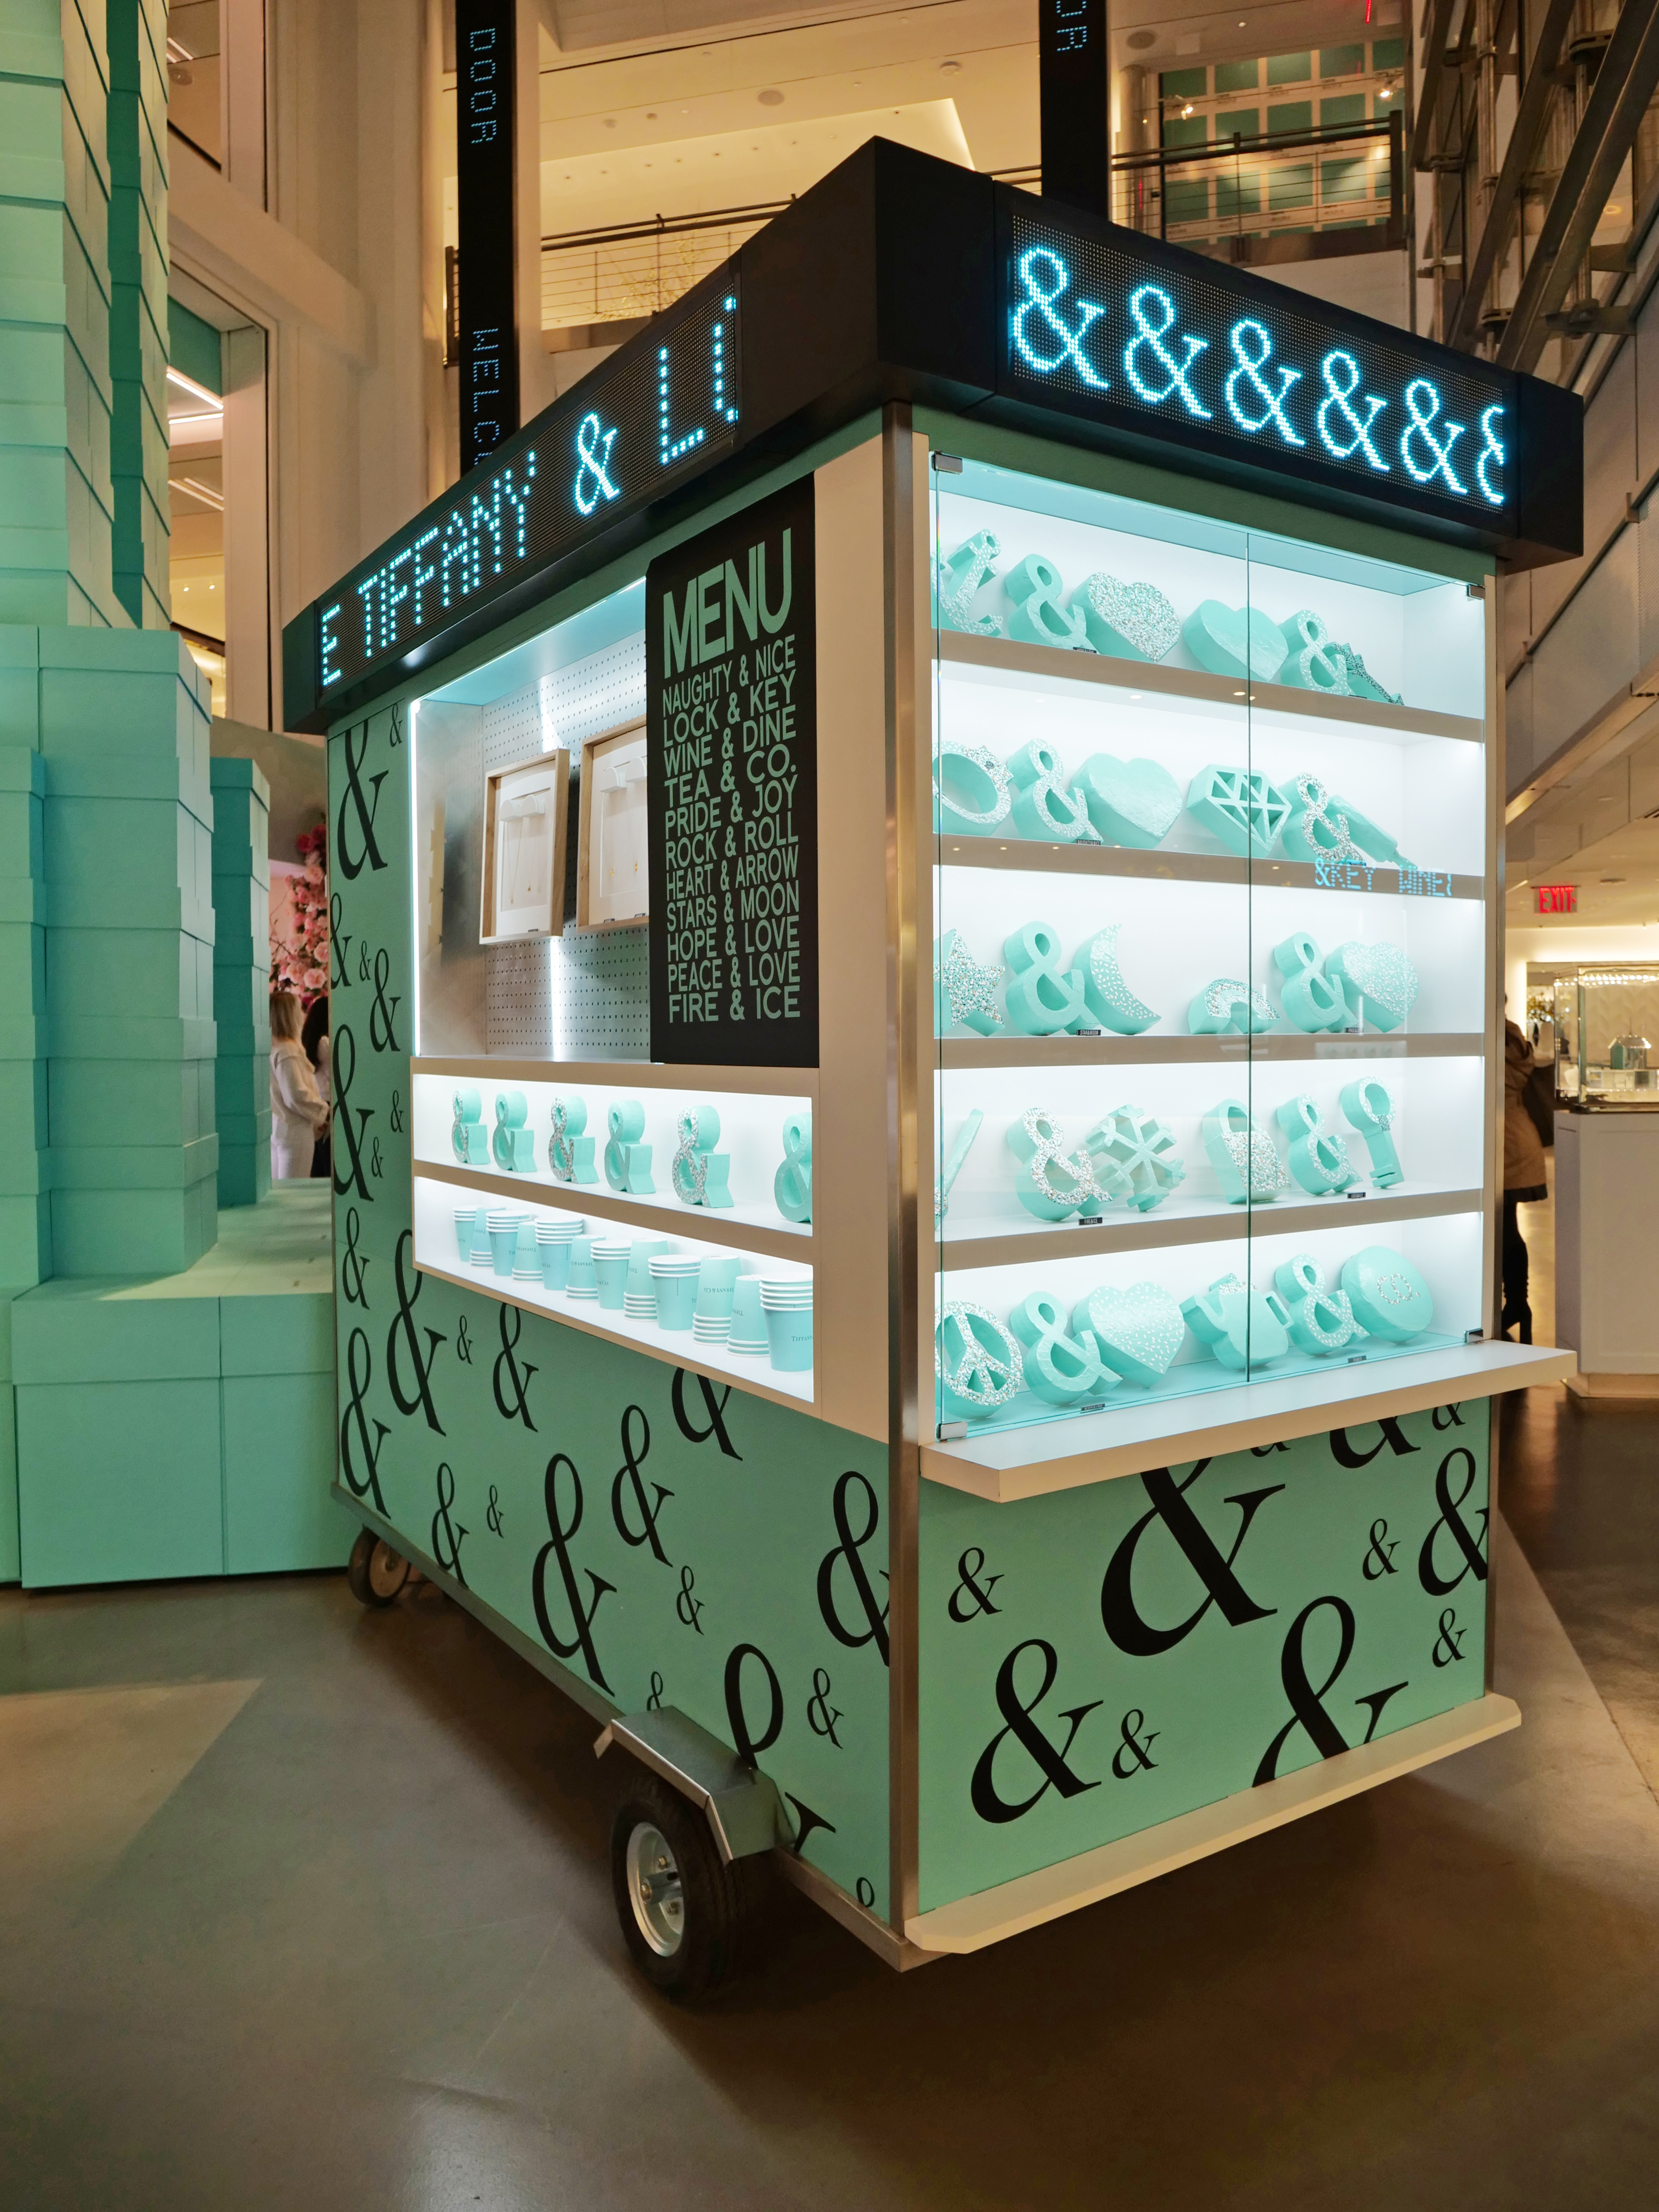 NYC Tiffany and Co Valentine's Day Subway Flower Installation pretzel cart